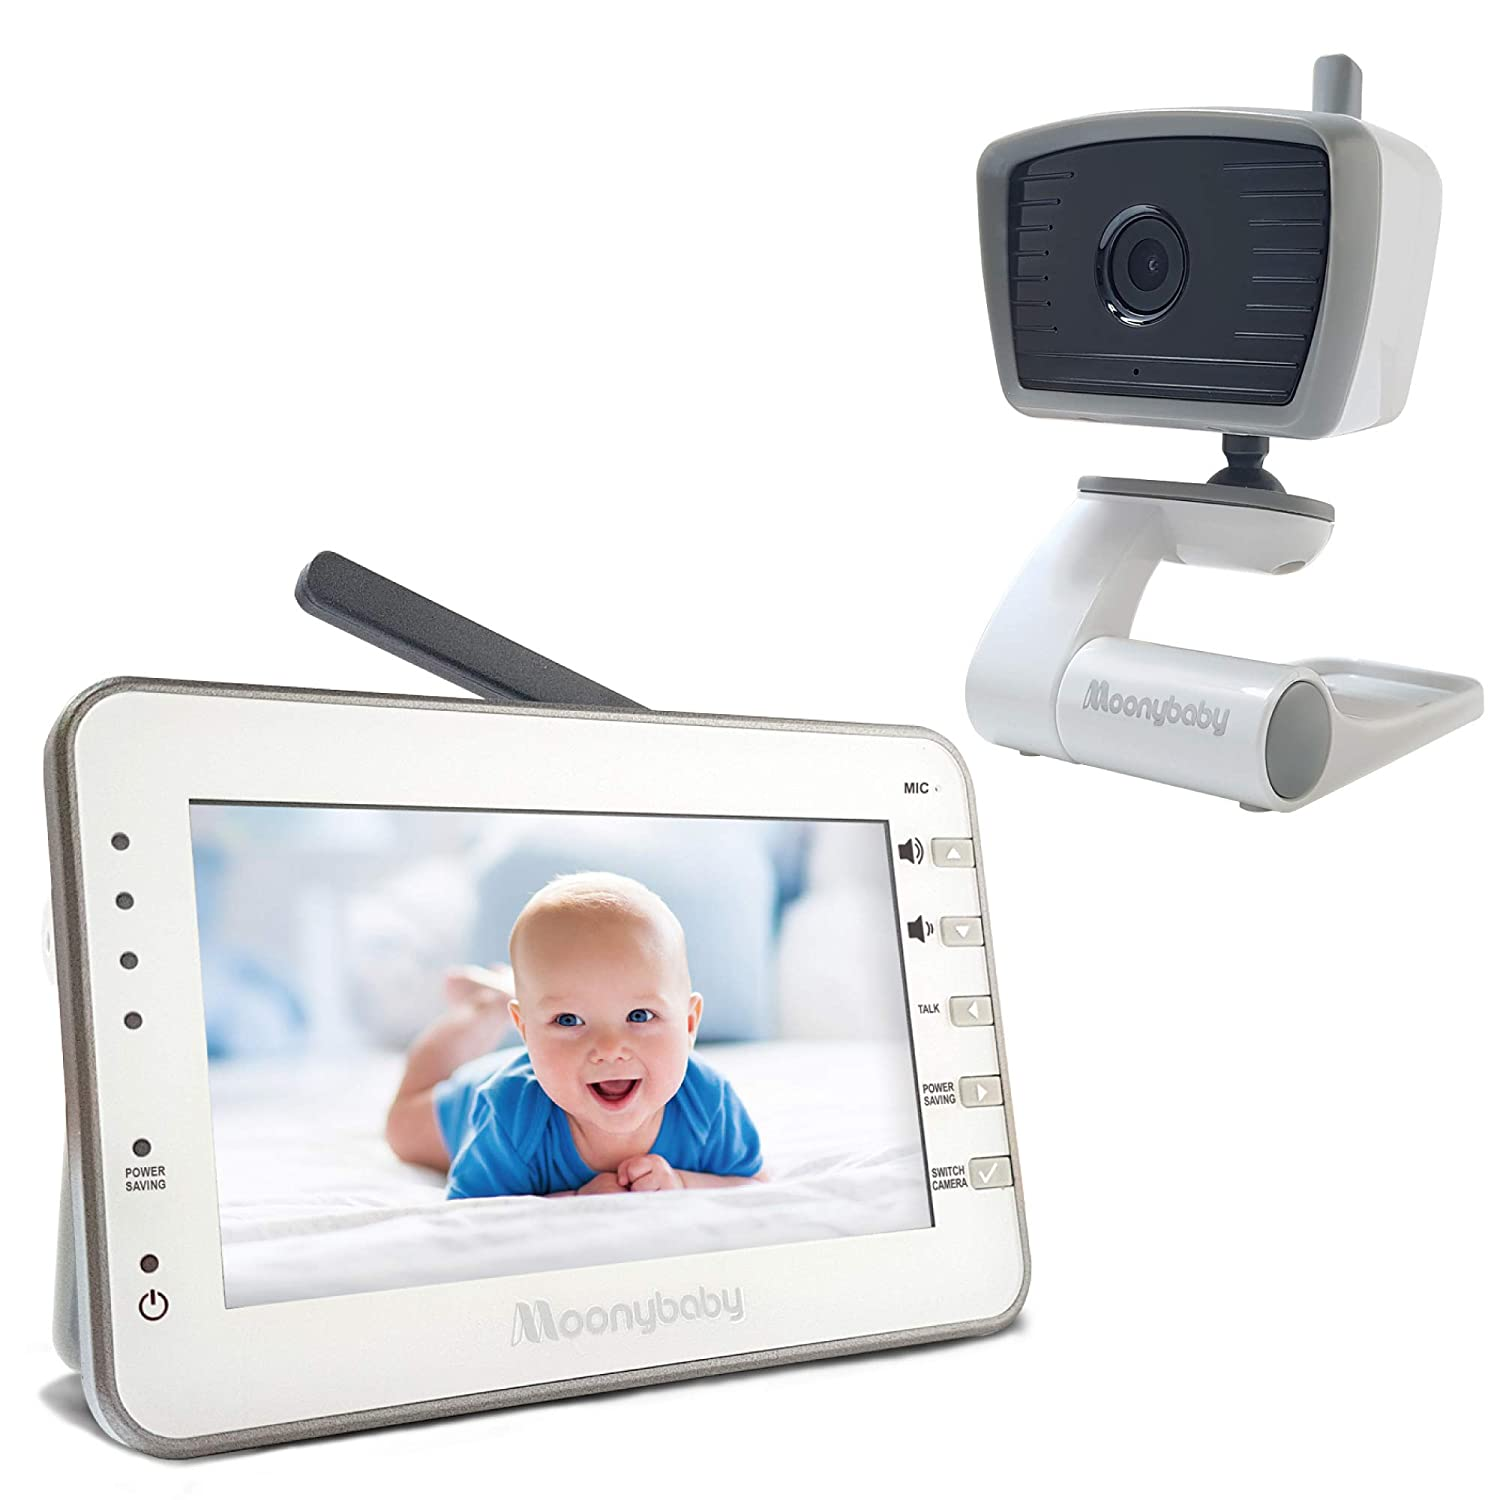 MoonyBaby Long Range No WiFi Baby Monitor with Camera and Audio, Power Saving/Voice Activation, Auto Night Vision, 2-Way Talk-Back and Long Battery Life, Trust 30